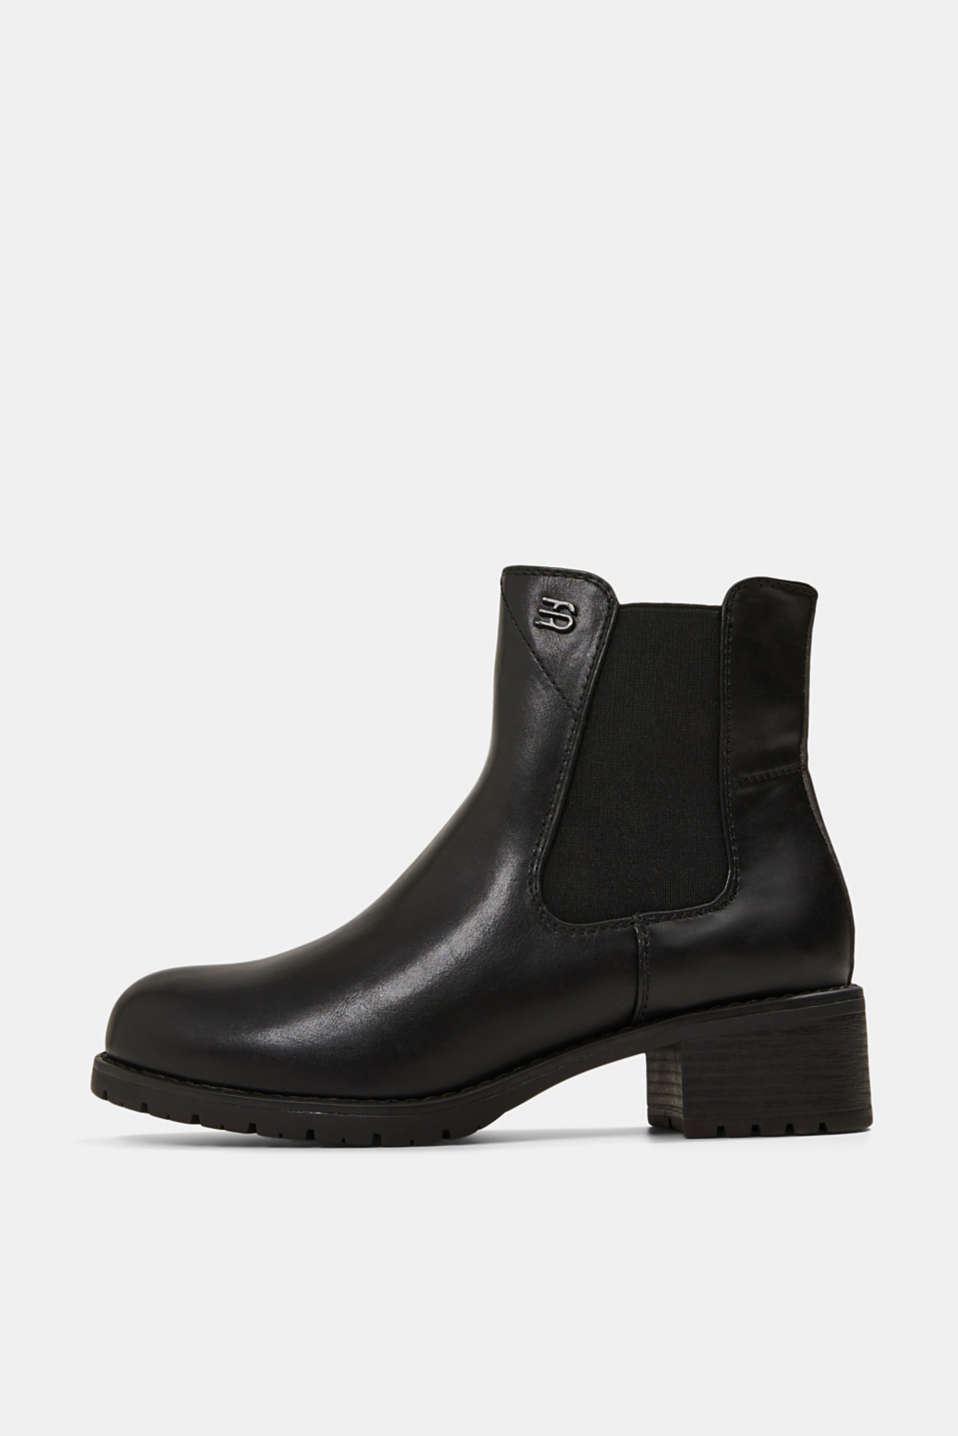 Esprit - Chelsea boots in faux leather